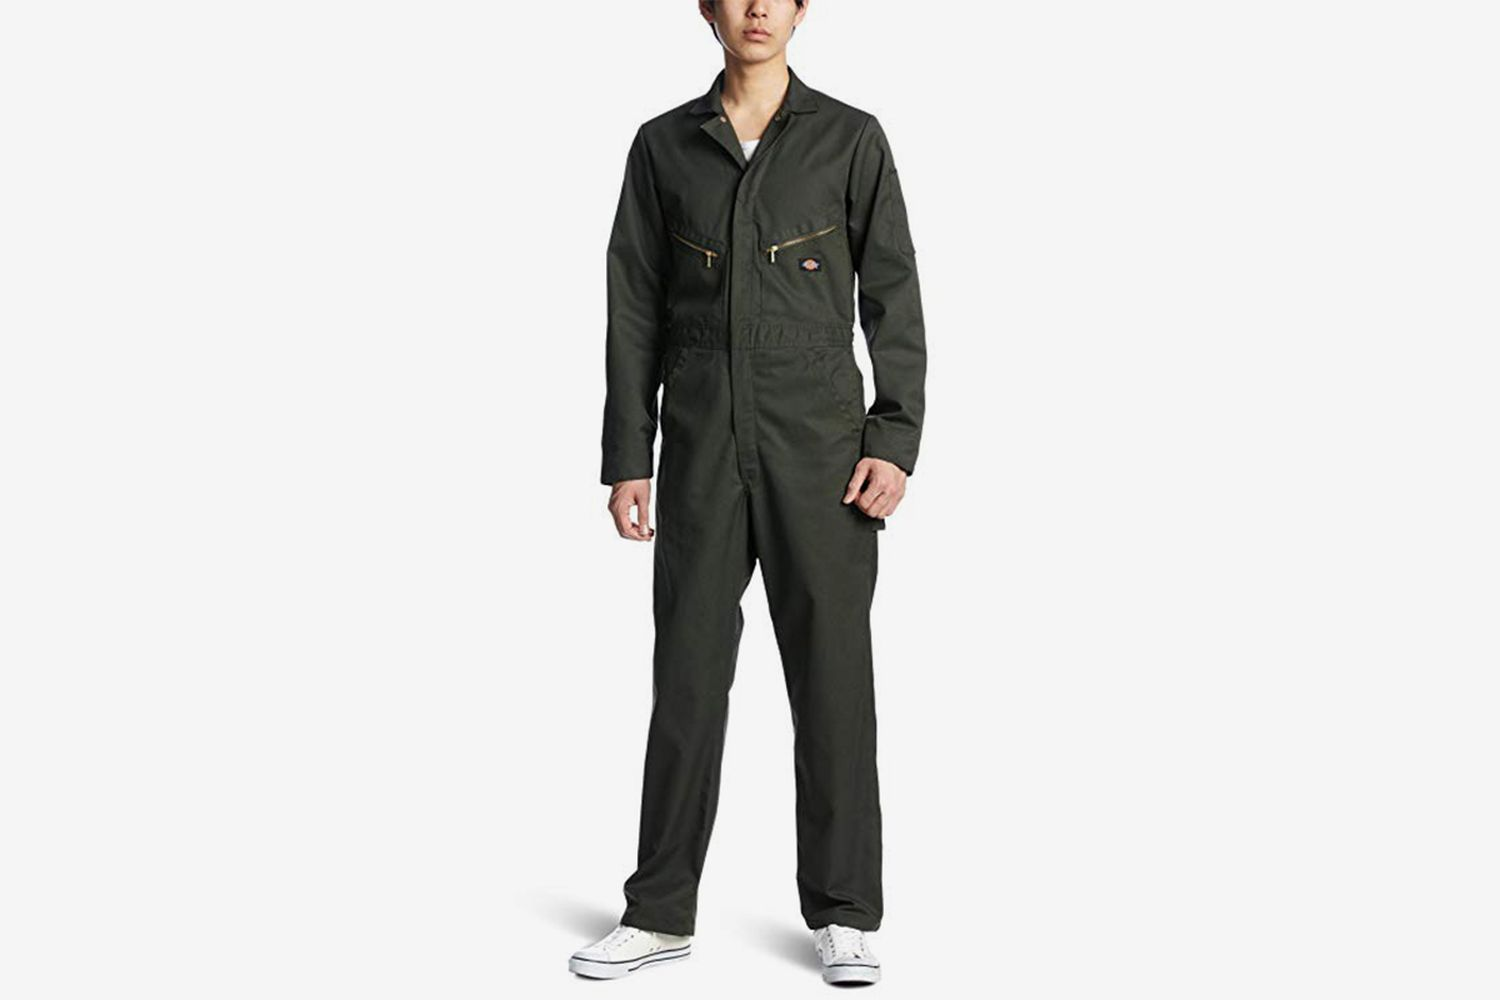 Twill Deluxe Long Sleeve Coverall